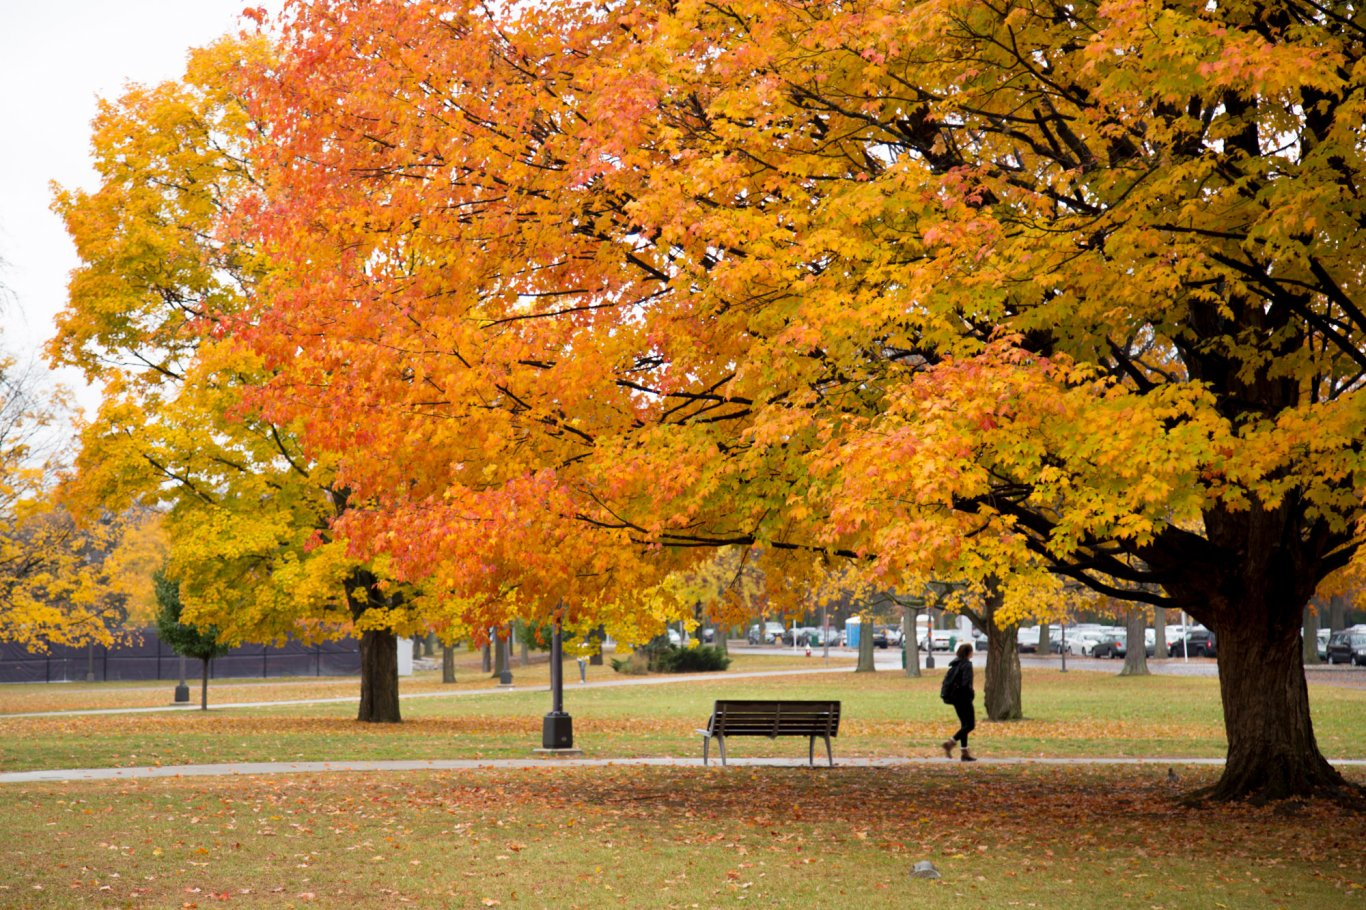 A student walks across campus amidst the fall foliage.